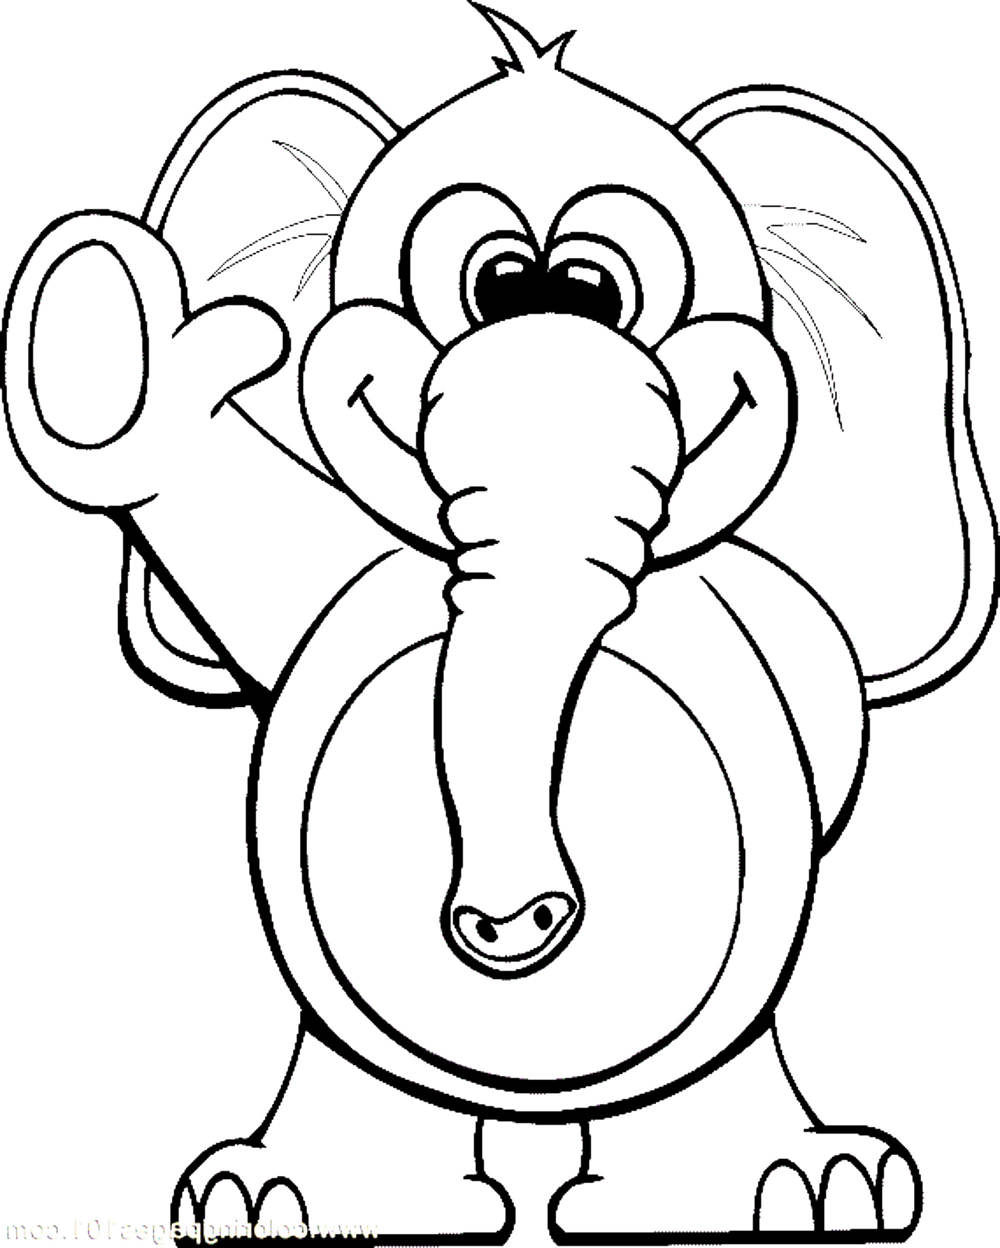 coloring pictures elephant print download teaching kids through elephant coloring coloring pictures elephant